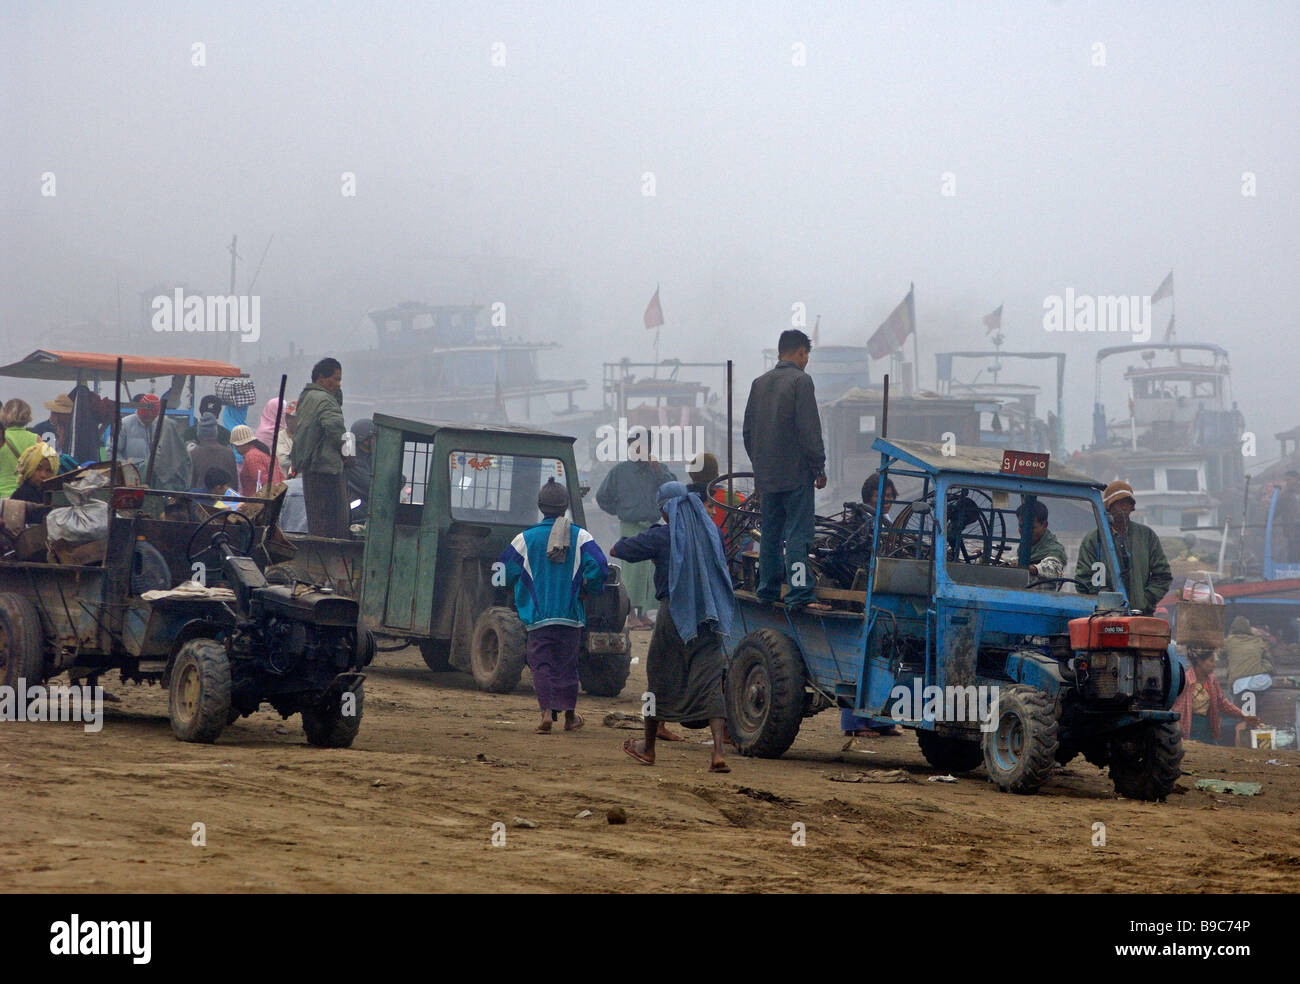 Scene in the early morning at the ferry station of Mandalay Myanmar - Stock Image